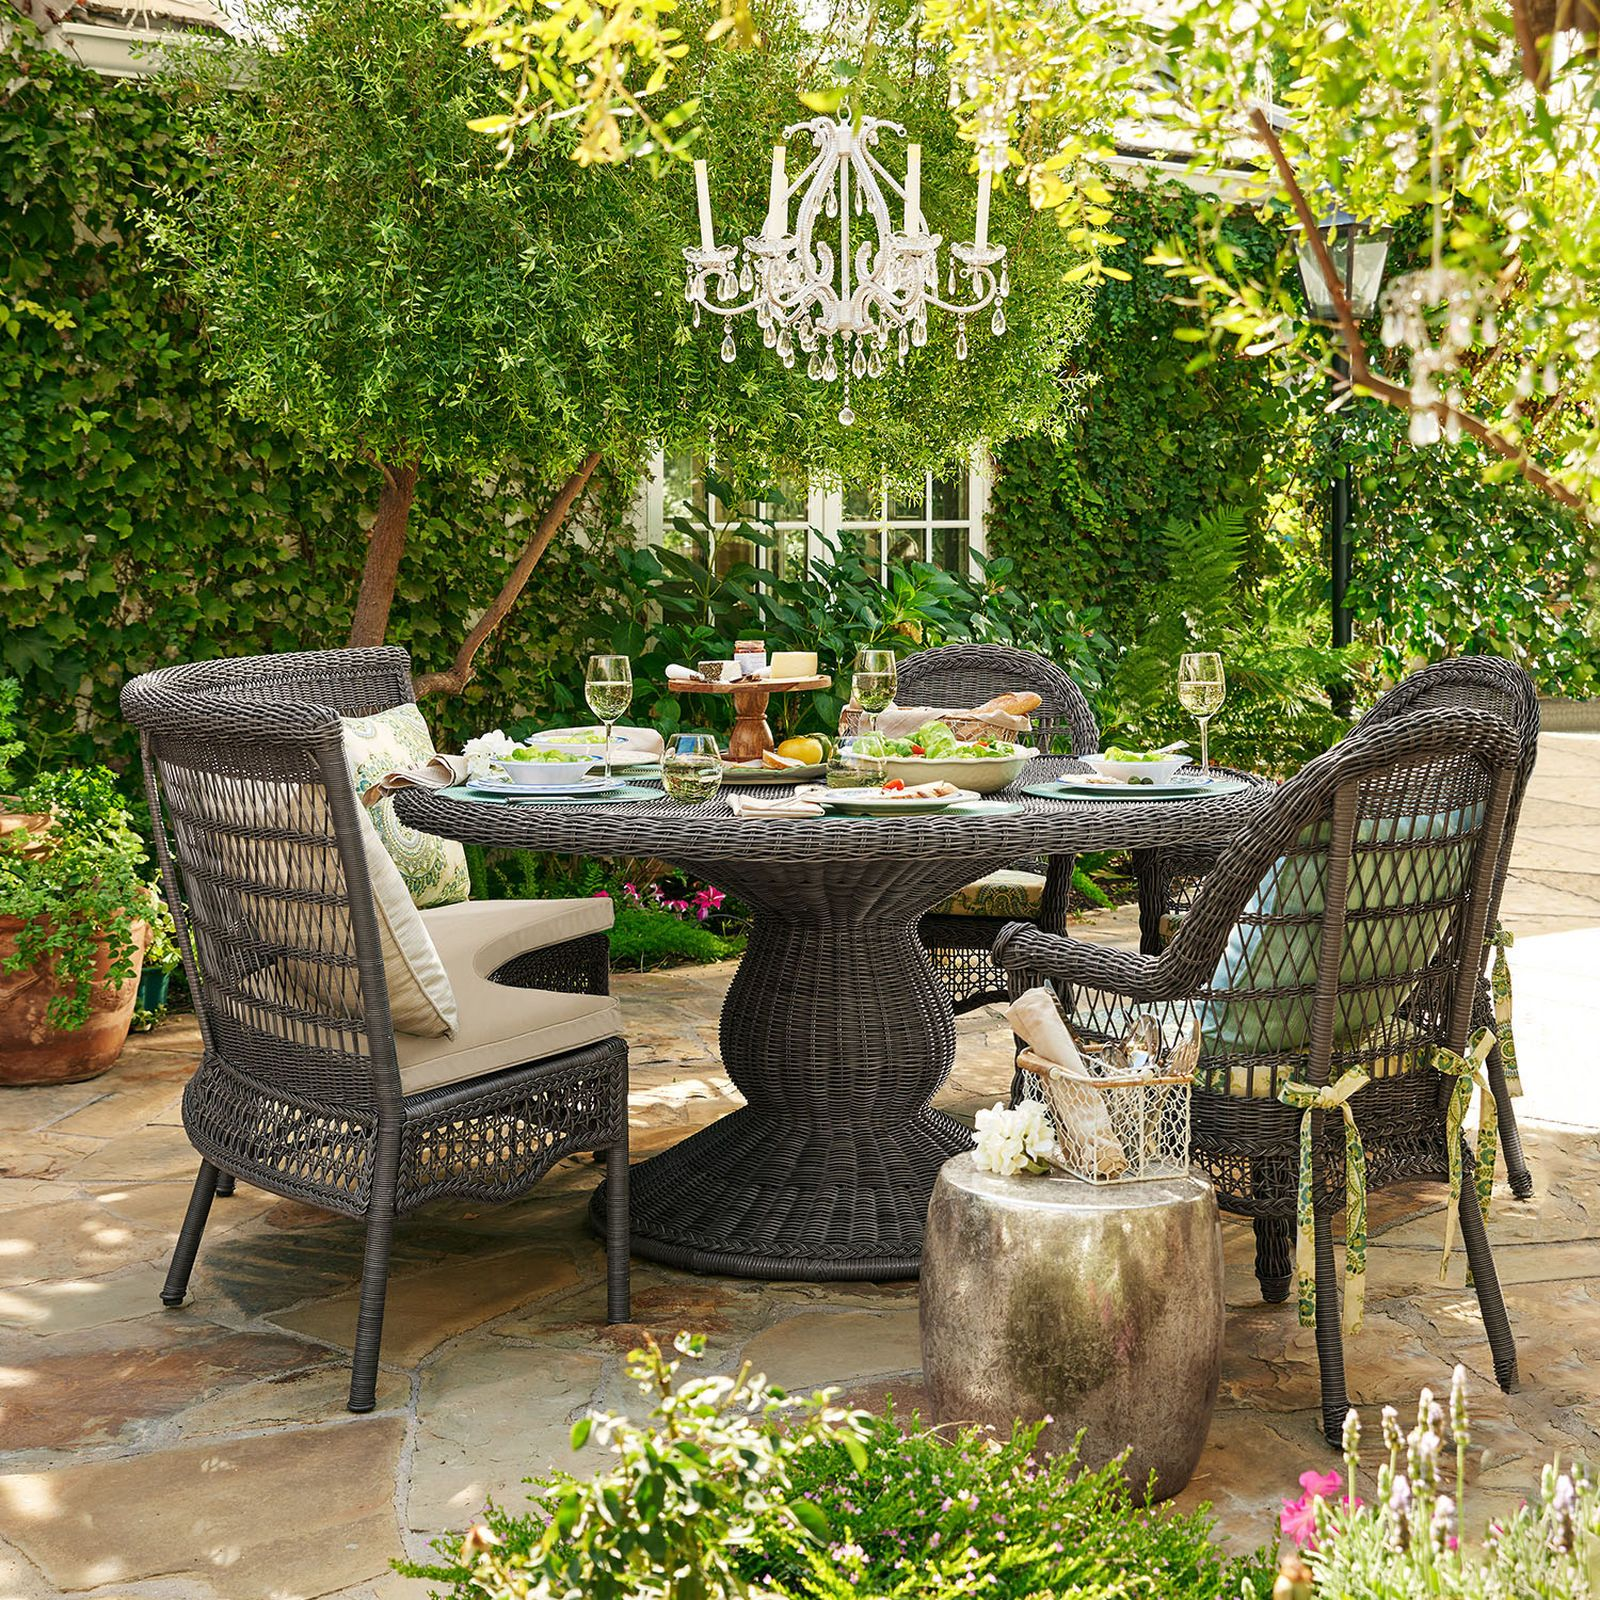 Peachy Beautiful Weather Check Lemonade And A Delicious Read Gmtry Best Dining Table And Chair Ideas Images Gmtryco